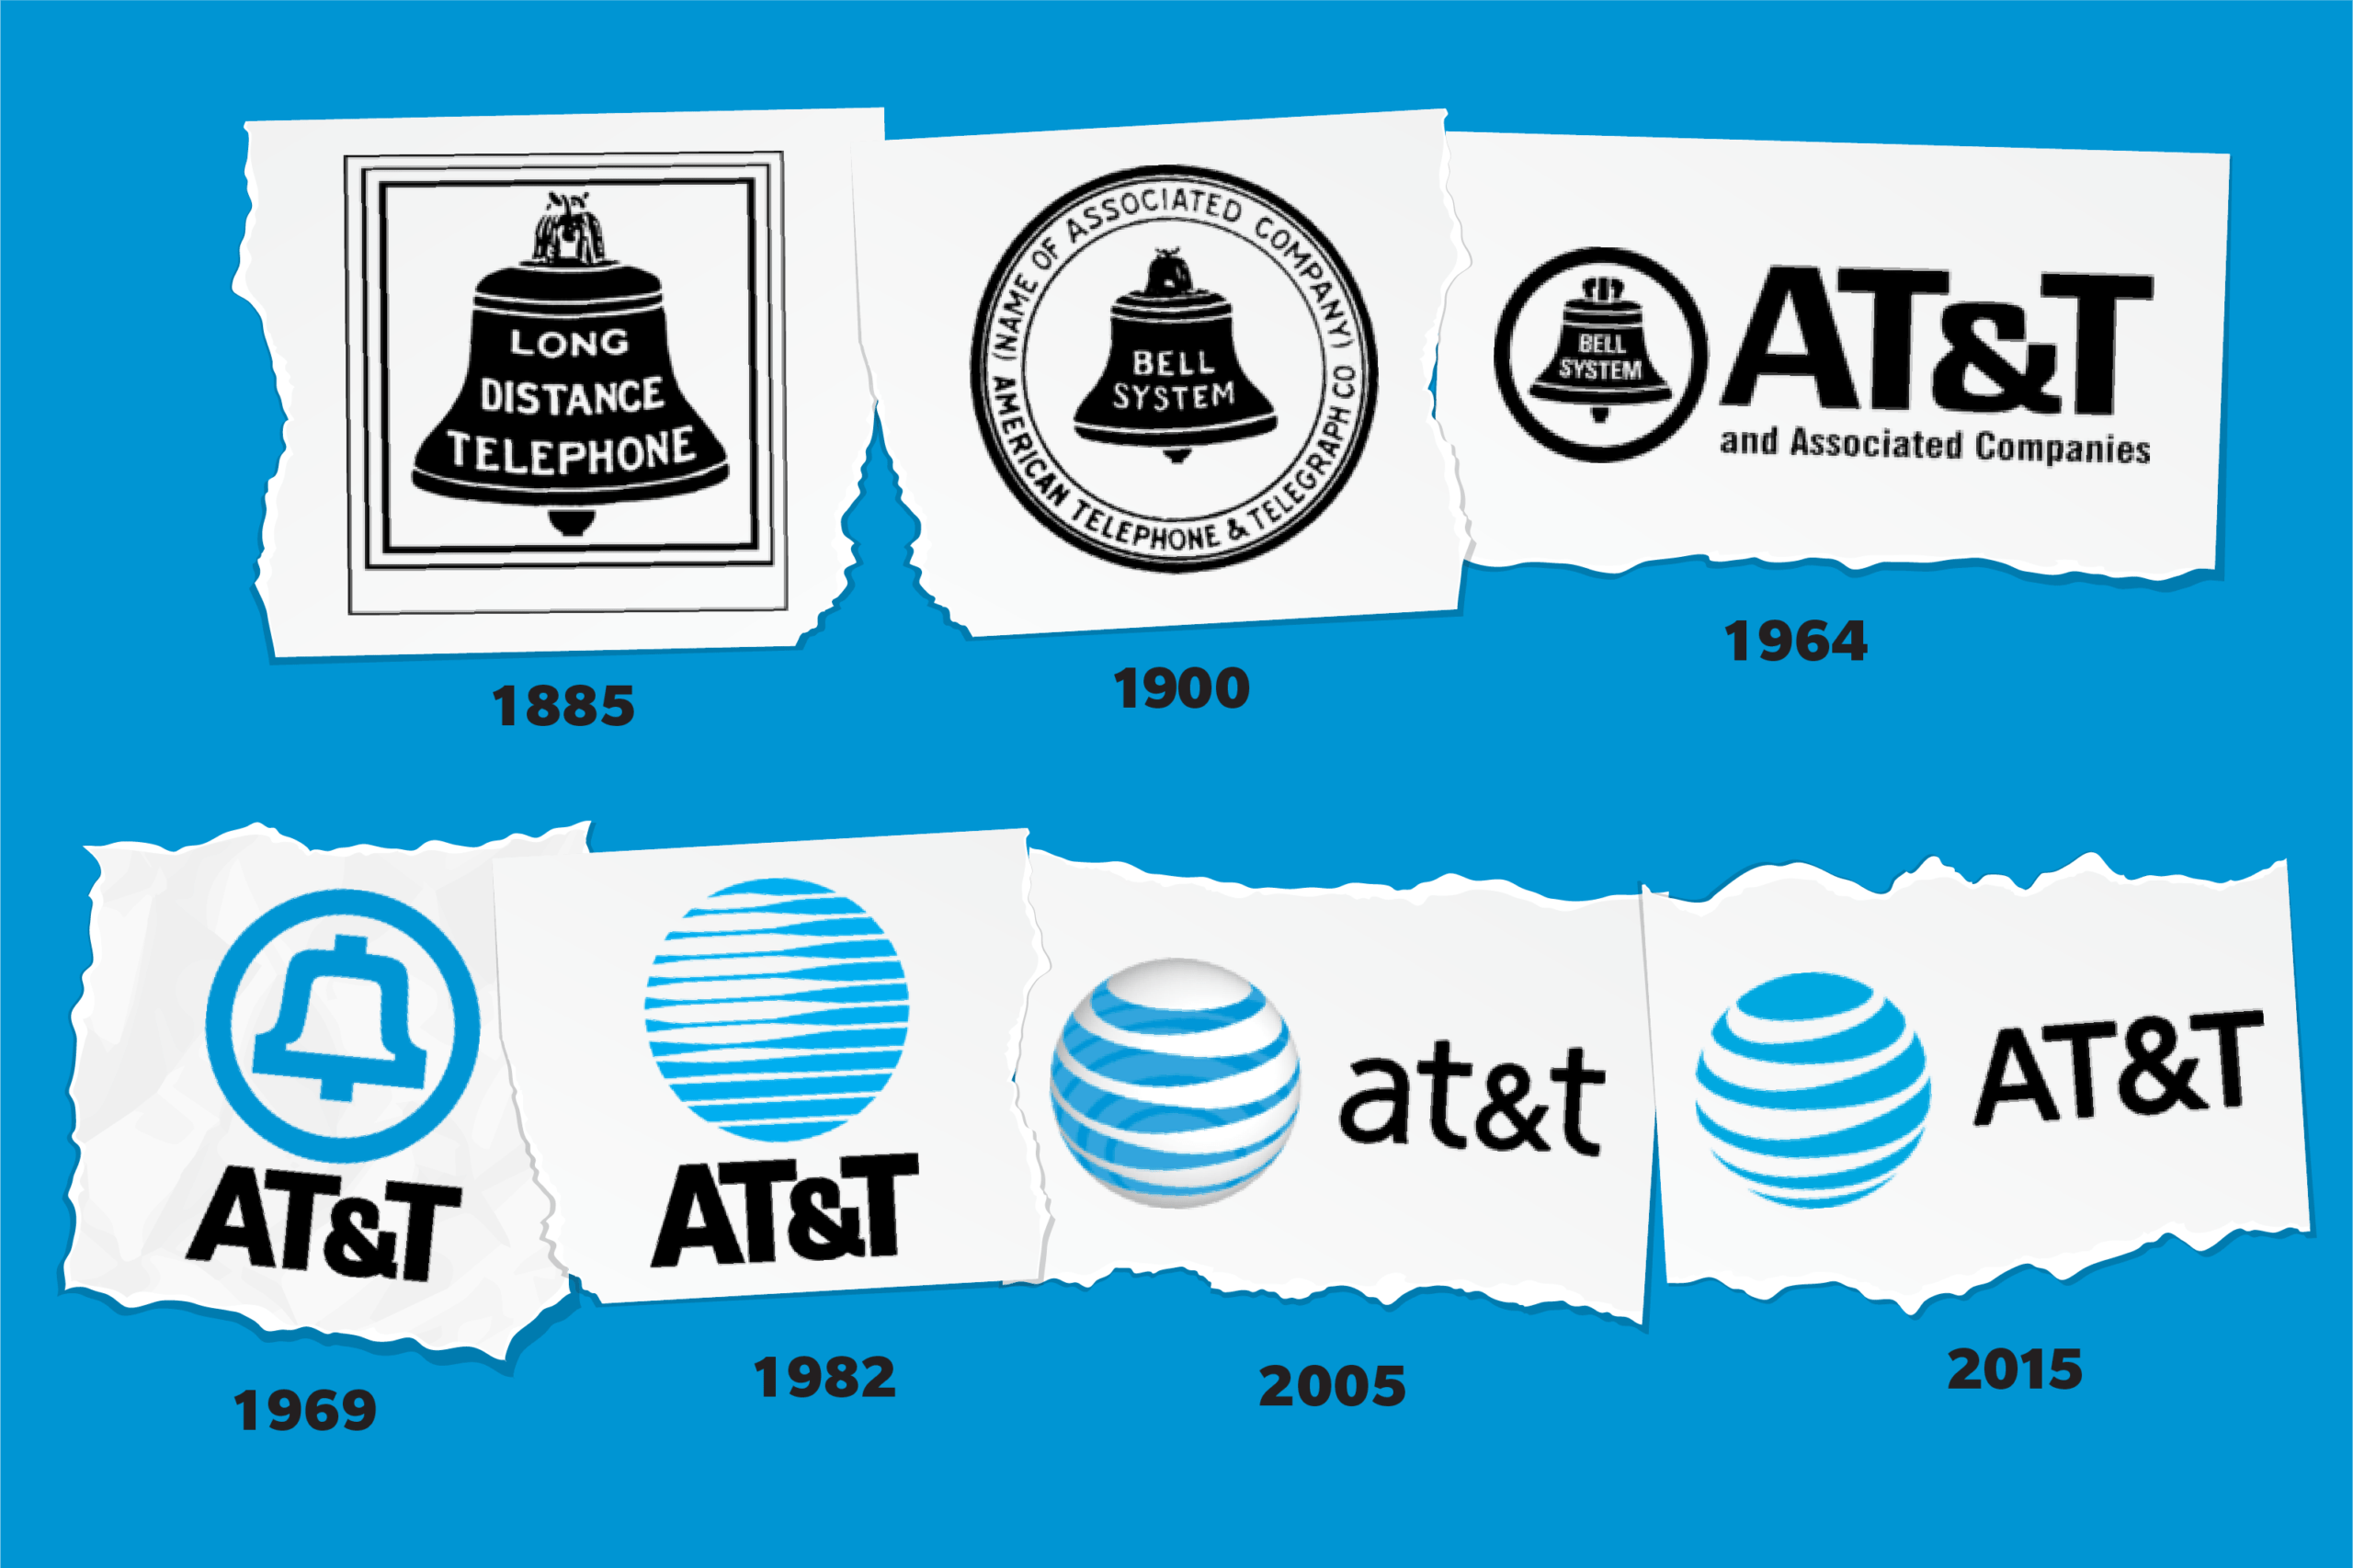 Images of AT&T logos through time